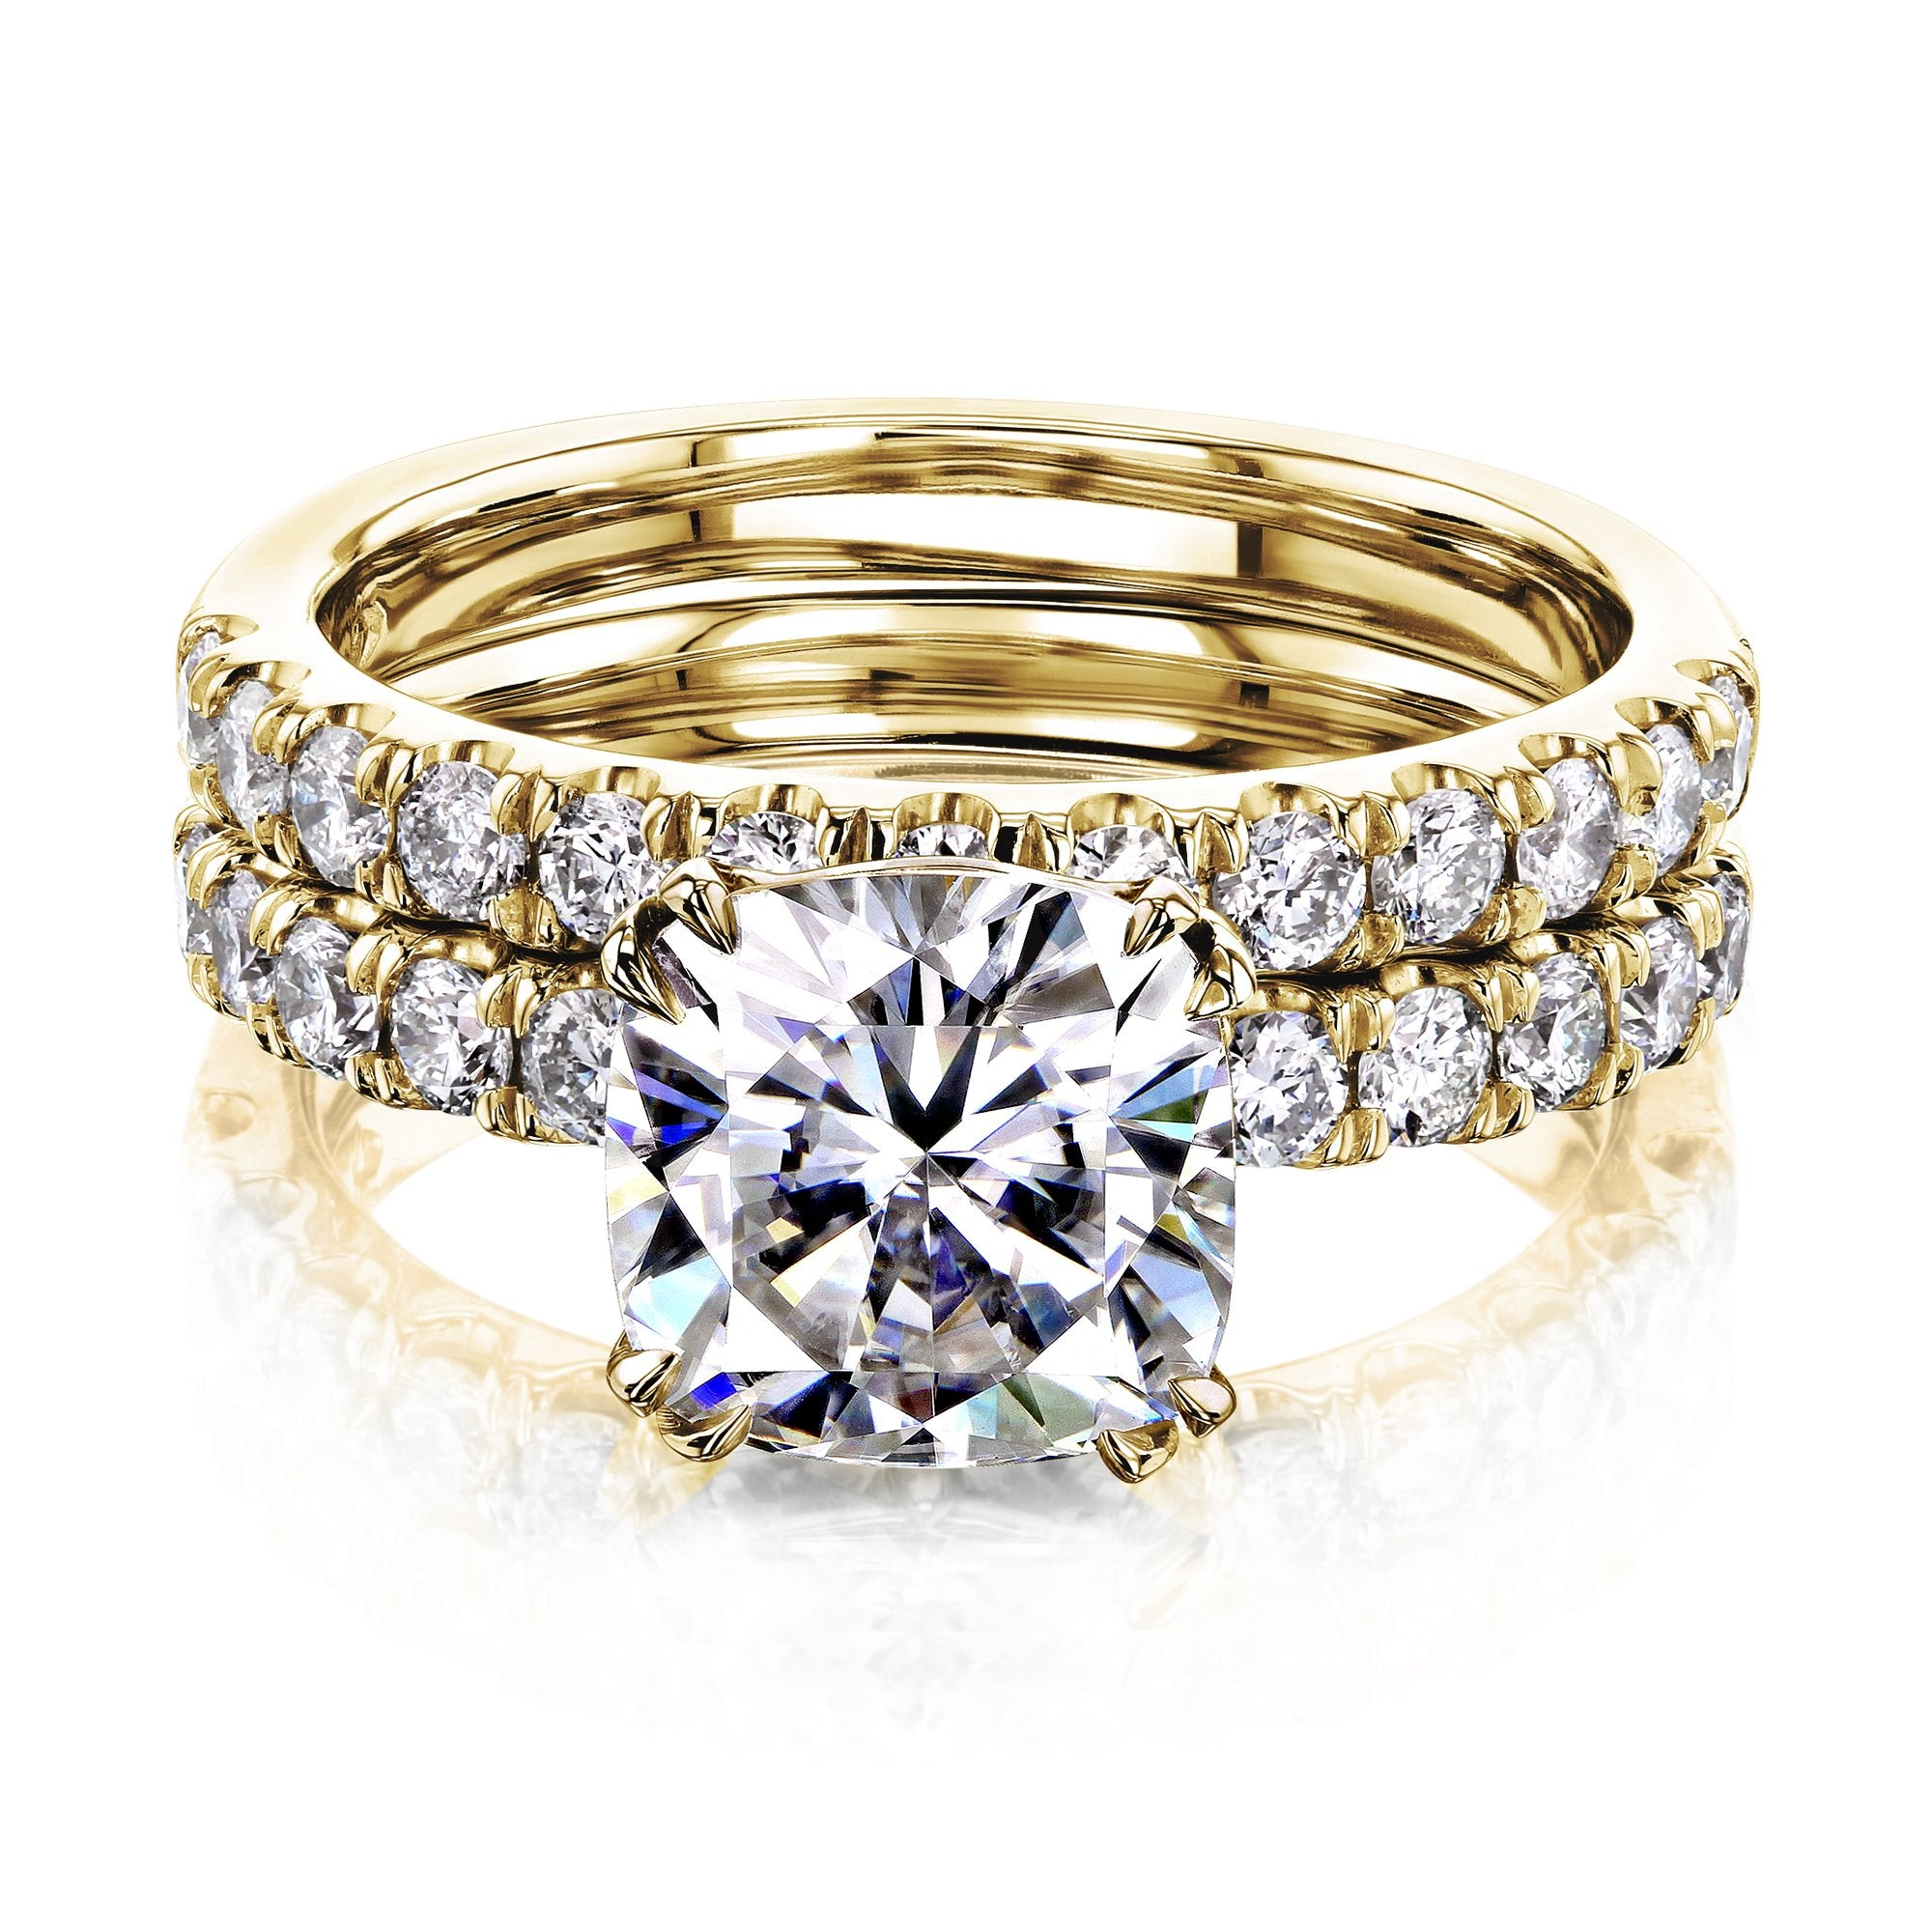 Best 2ct Cushion Moissanite Comfort Fit French Pave Bridal - yellow-gold 4.5 Kobelli H-I